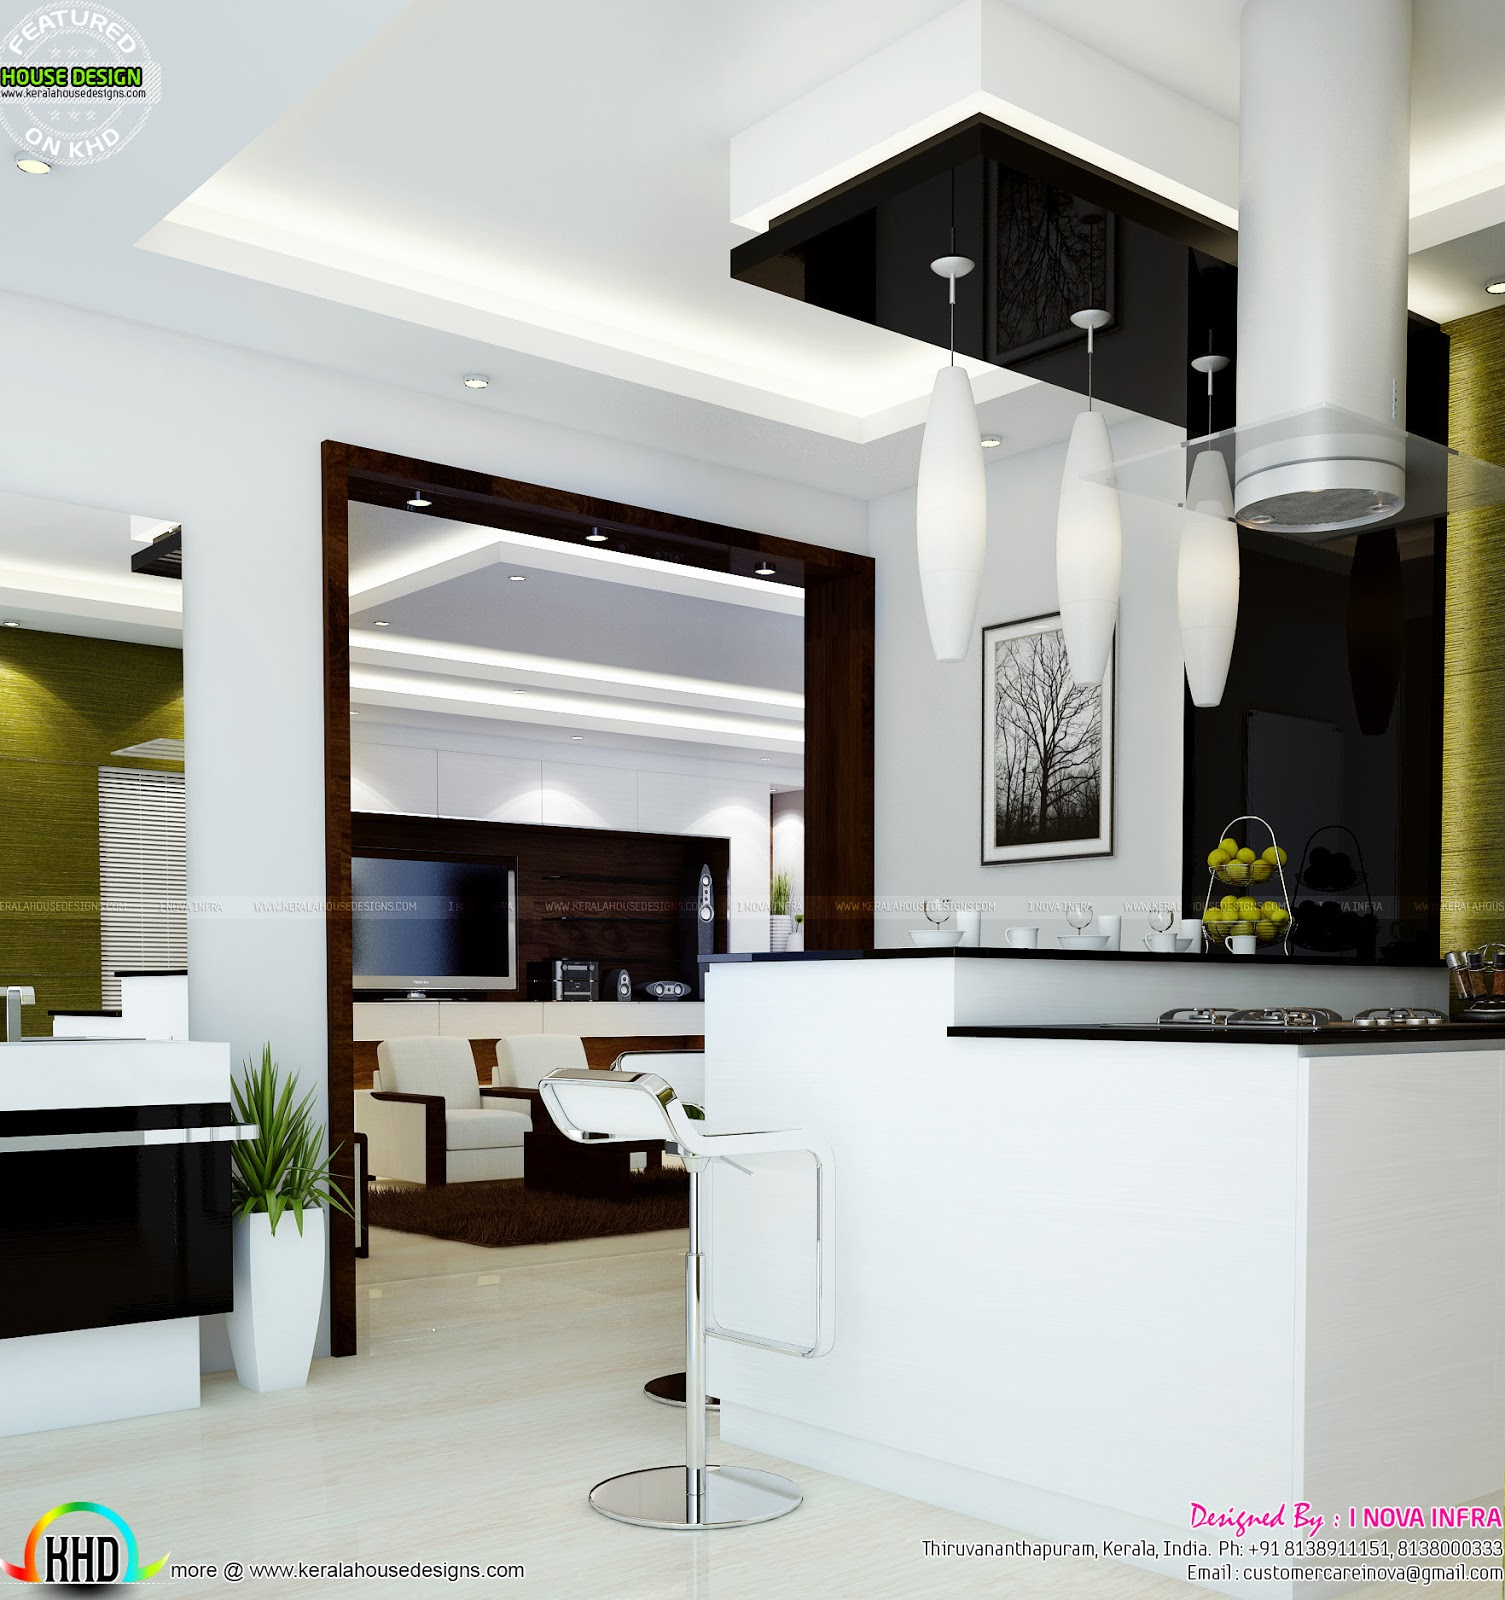 Kerala House Designs Plans Interior: Home Interior Designs By I Nova Infra